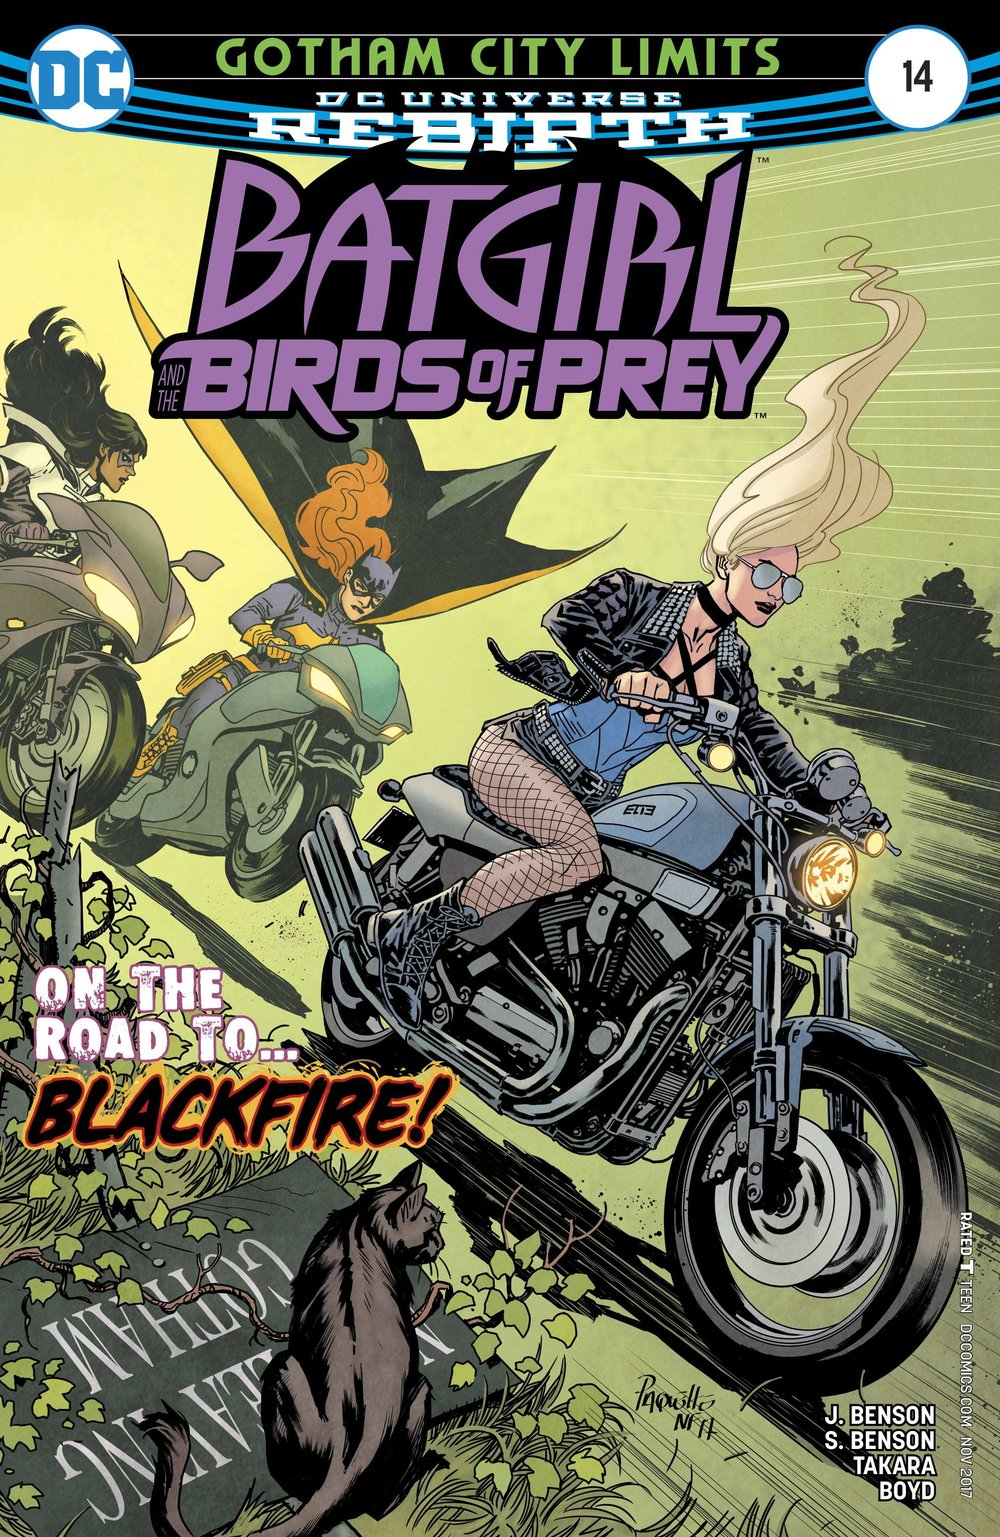 BATGIRL AND THE BIRDS OF PREY 14.jpg